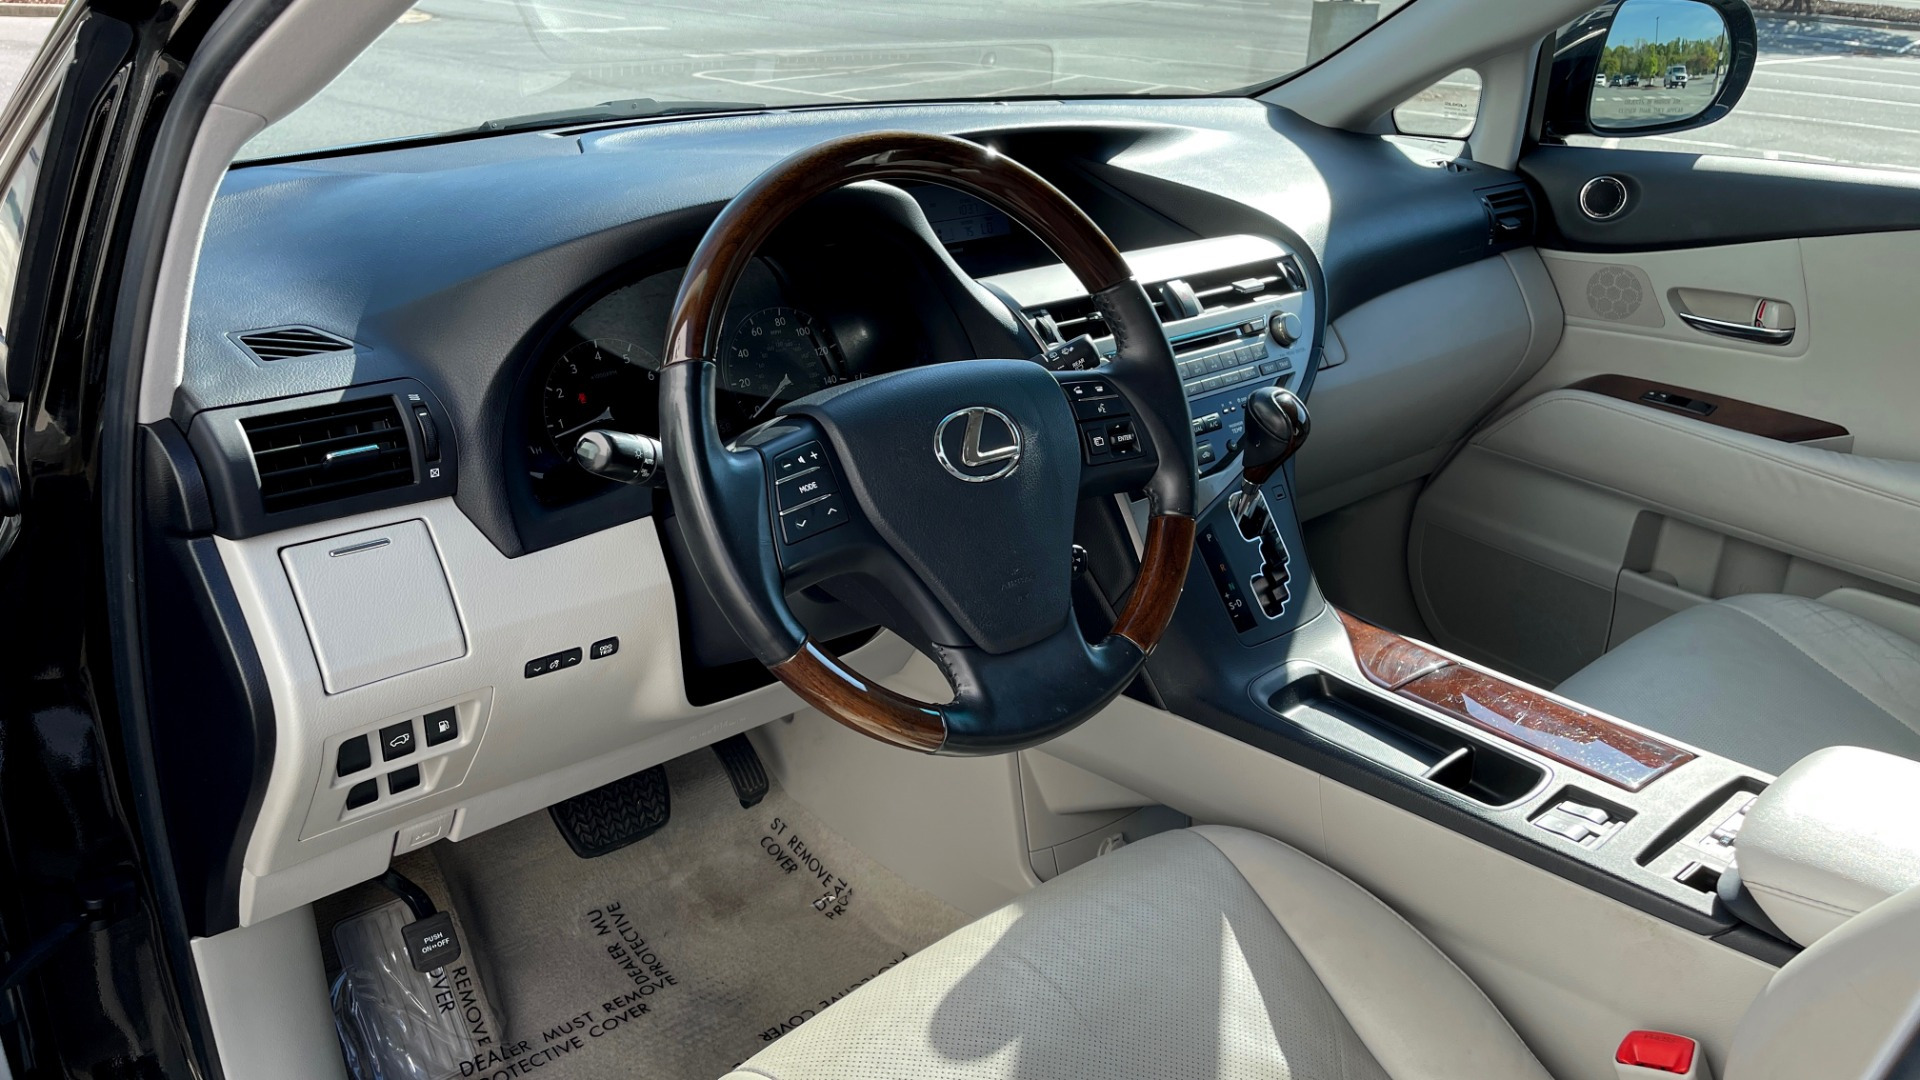 Used 2011 Lexus RX 350 PREMIUM / TOWING PREP PKG / VENTILATED STS / SUNROOF / REARVIEW for sale Sold at Formula Imports in Charlotte NC 28227 25